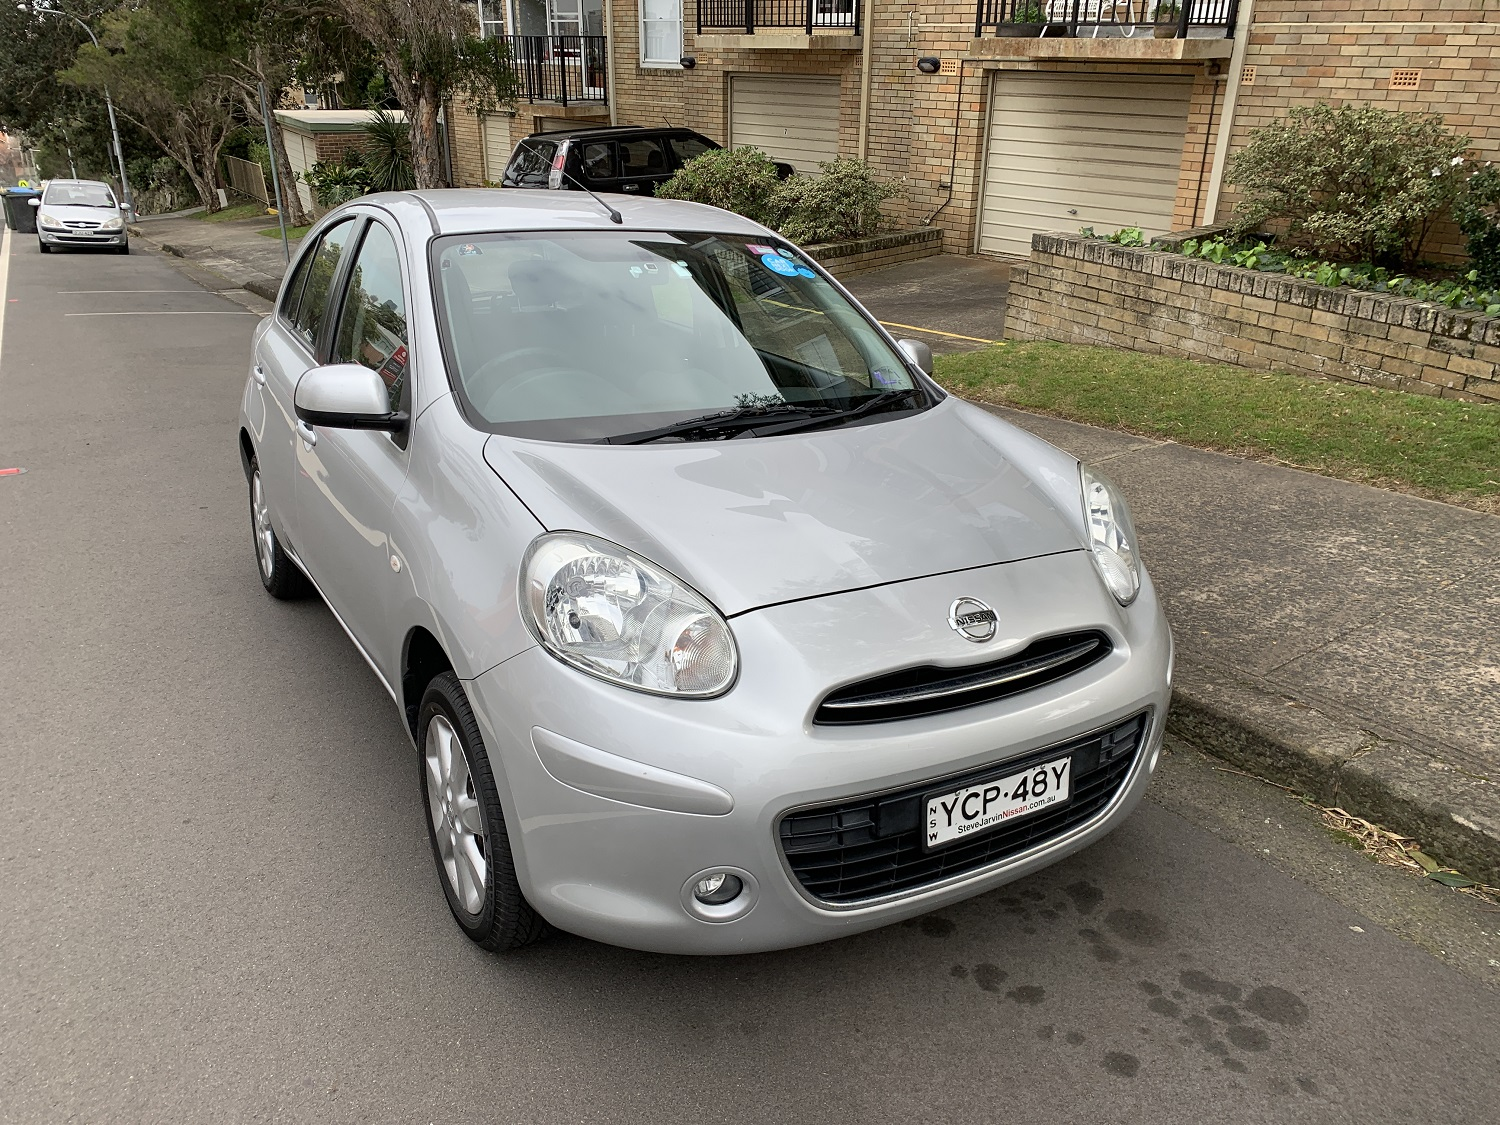 Picture of Amanda Jayne's 2013 Nissan Micra